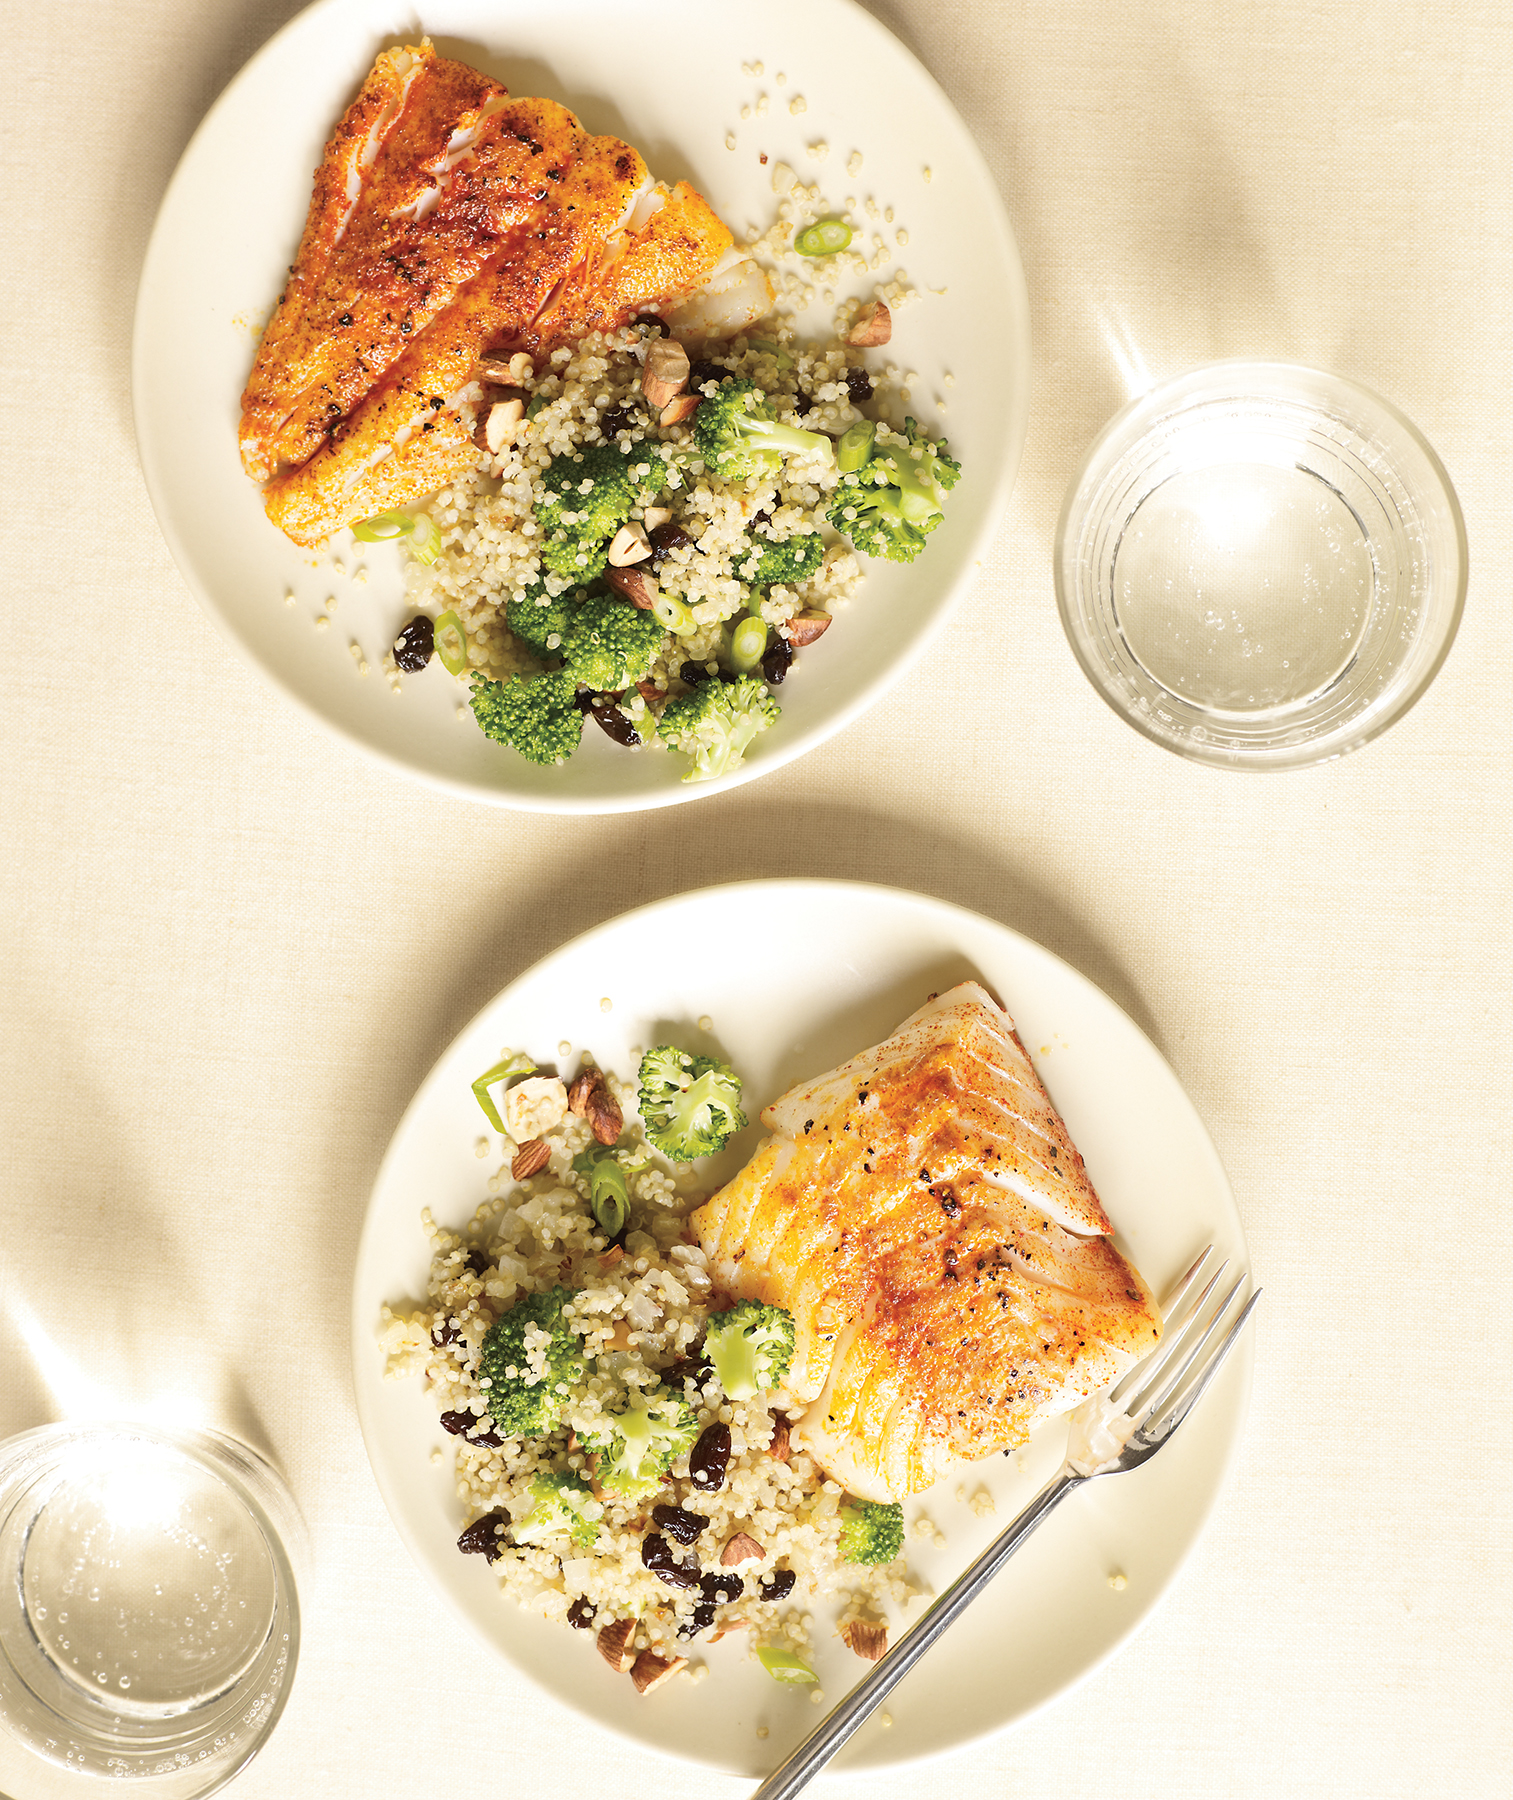 Spiced Cod With Broccoli-Quinoa Pilaf